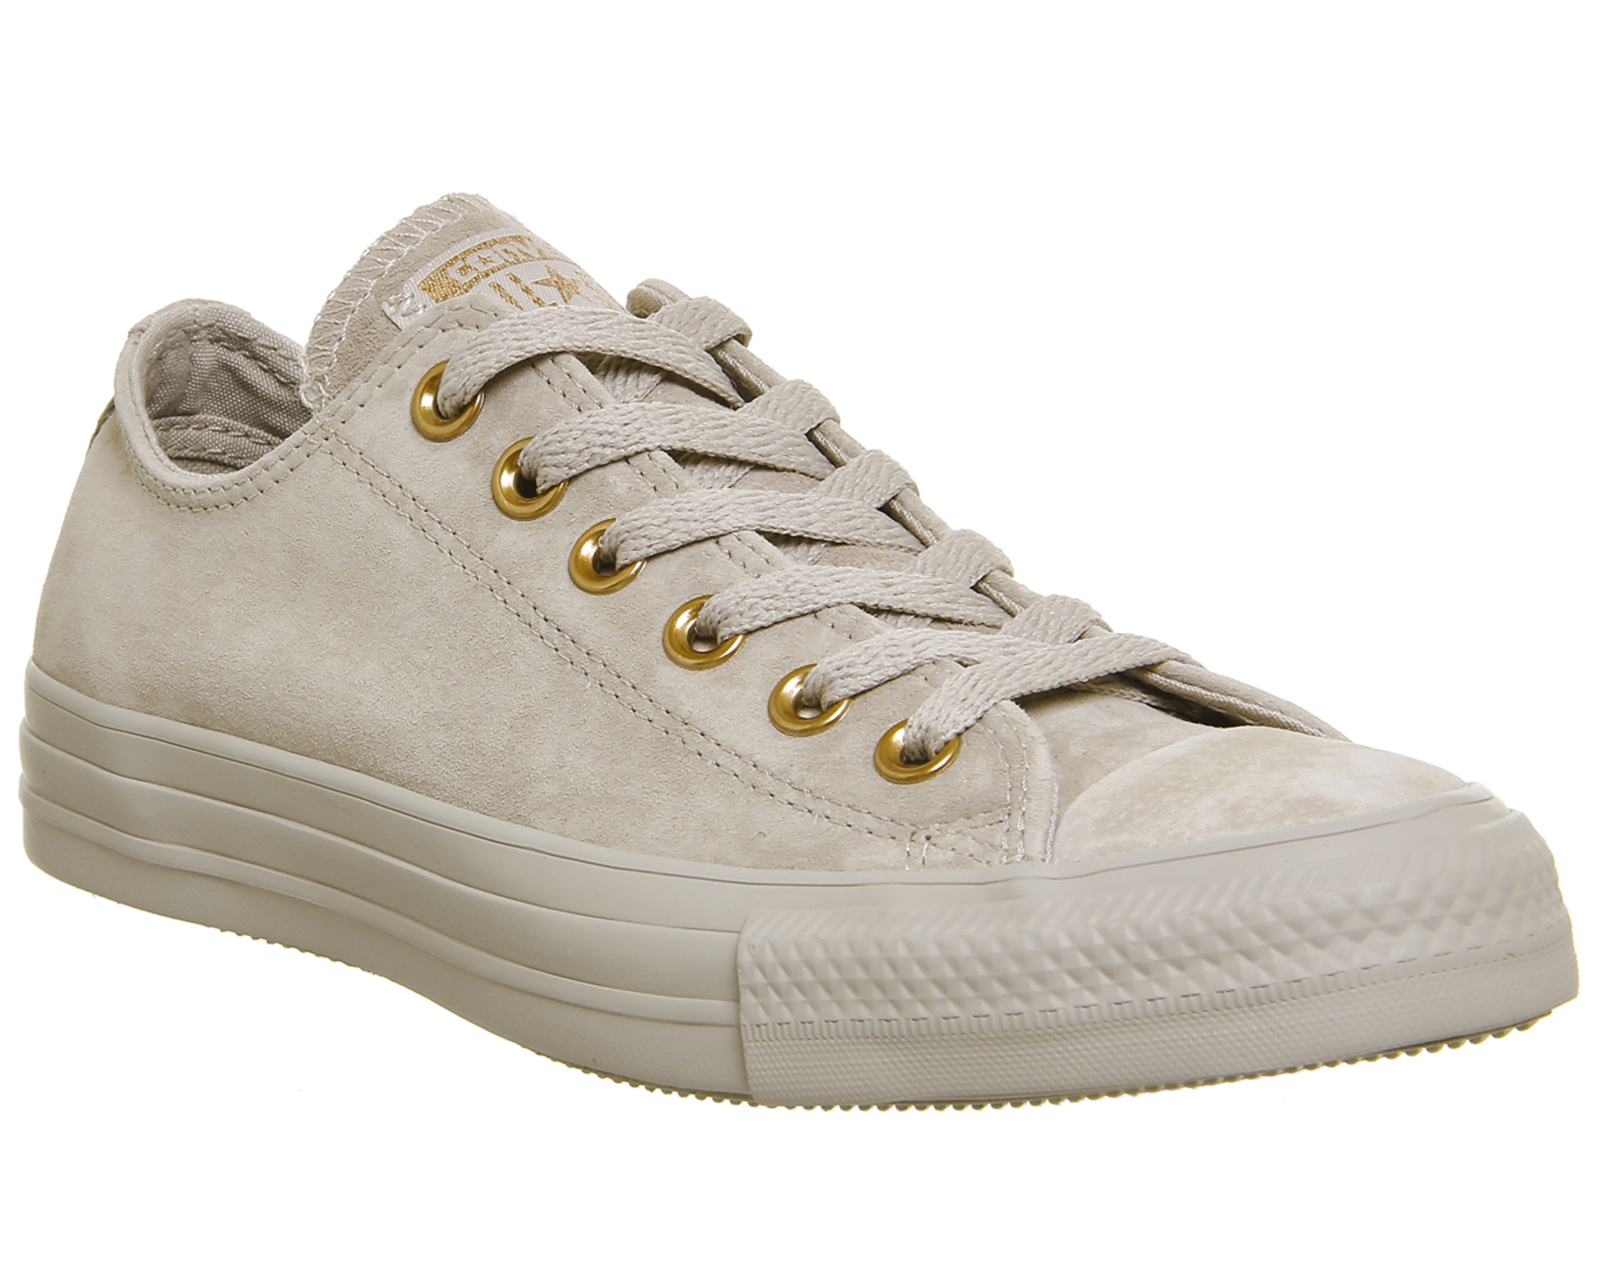 d38da3d2fa519d Sentinel Womens Converse All Star Low Leather Mushroom Blush Gold Trainers  Shoes